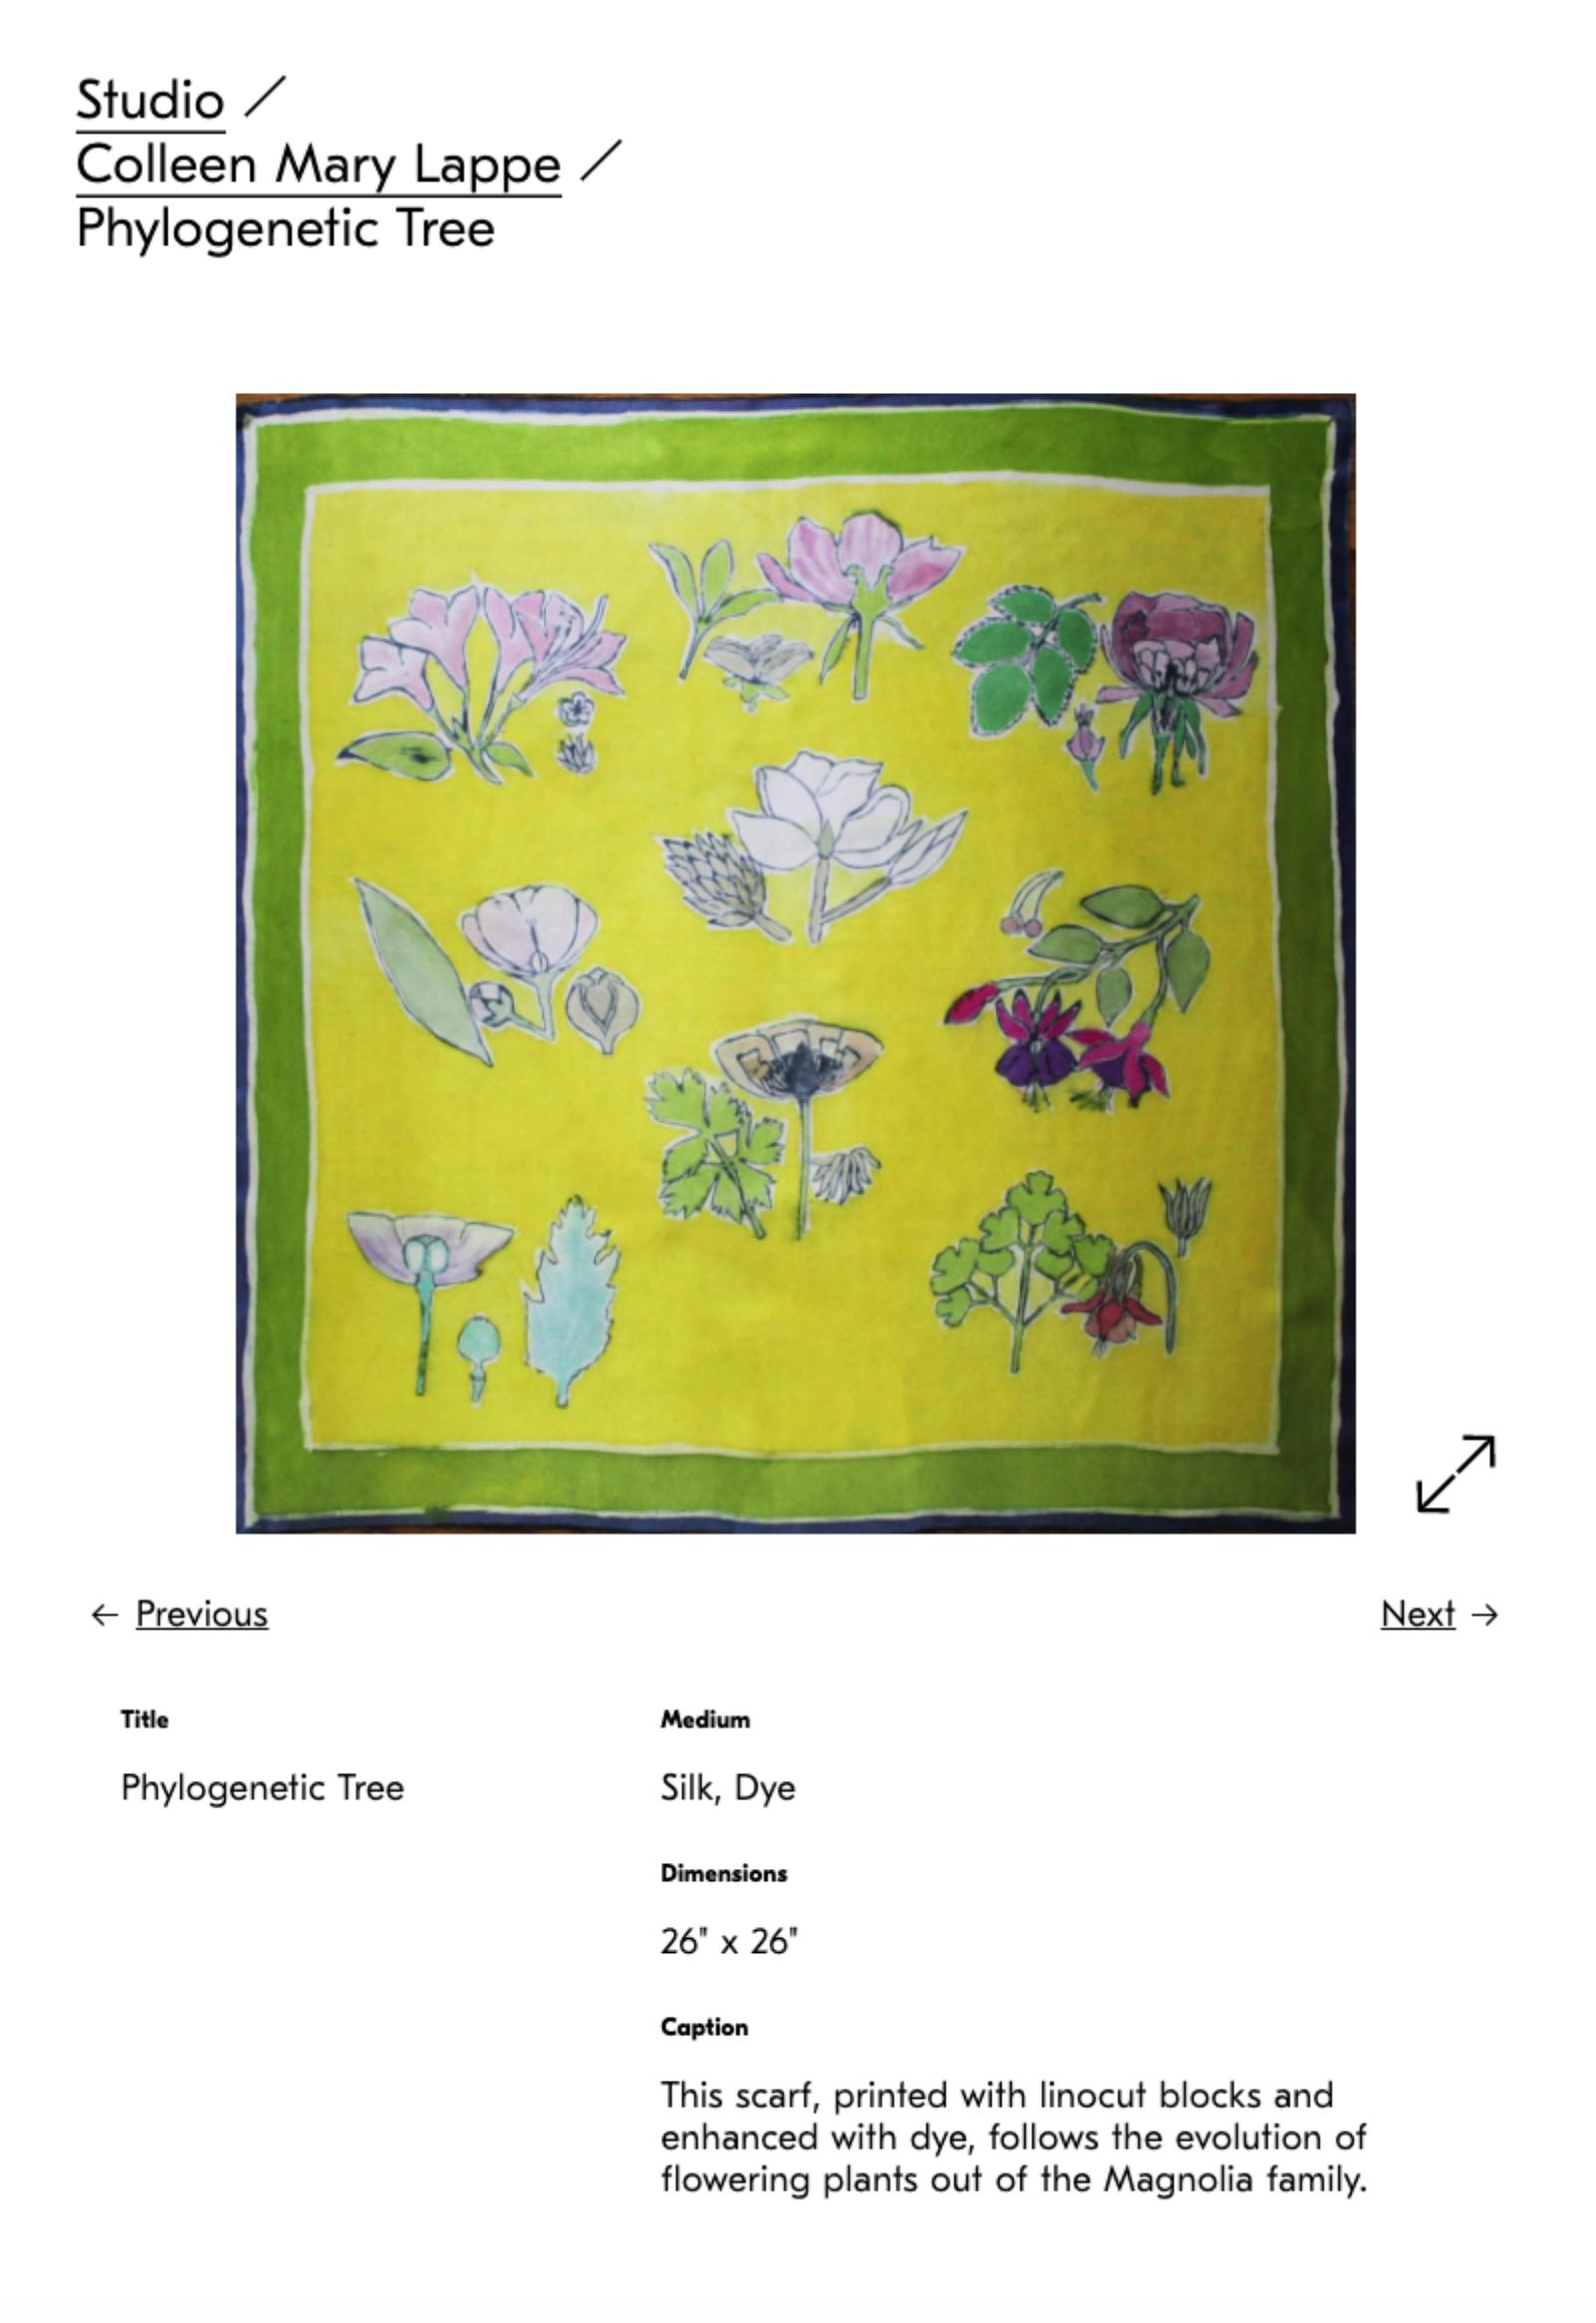 screenshot of sample image page featuring a yellow dyed fabric piece with painted flowers